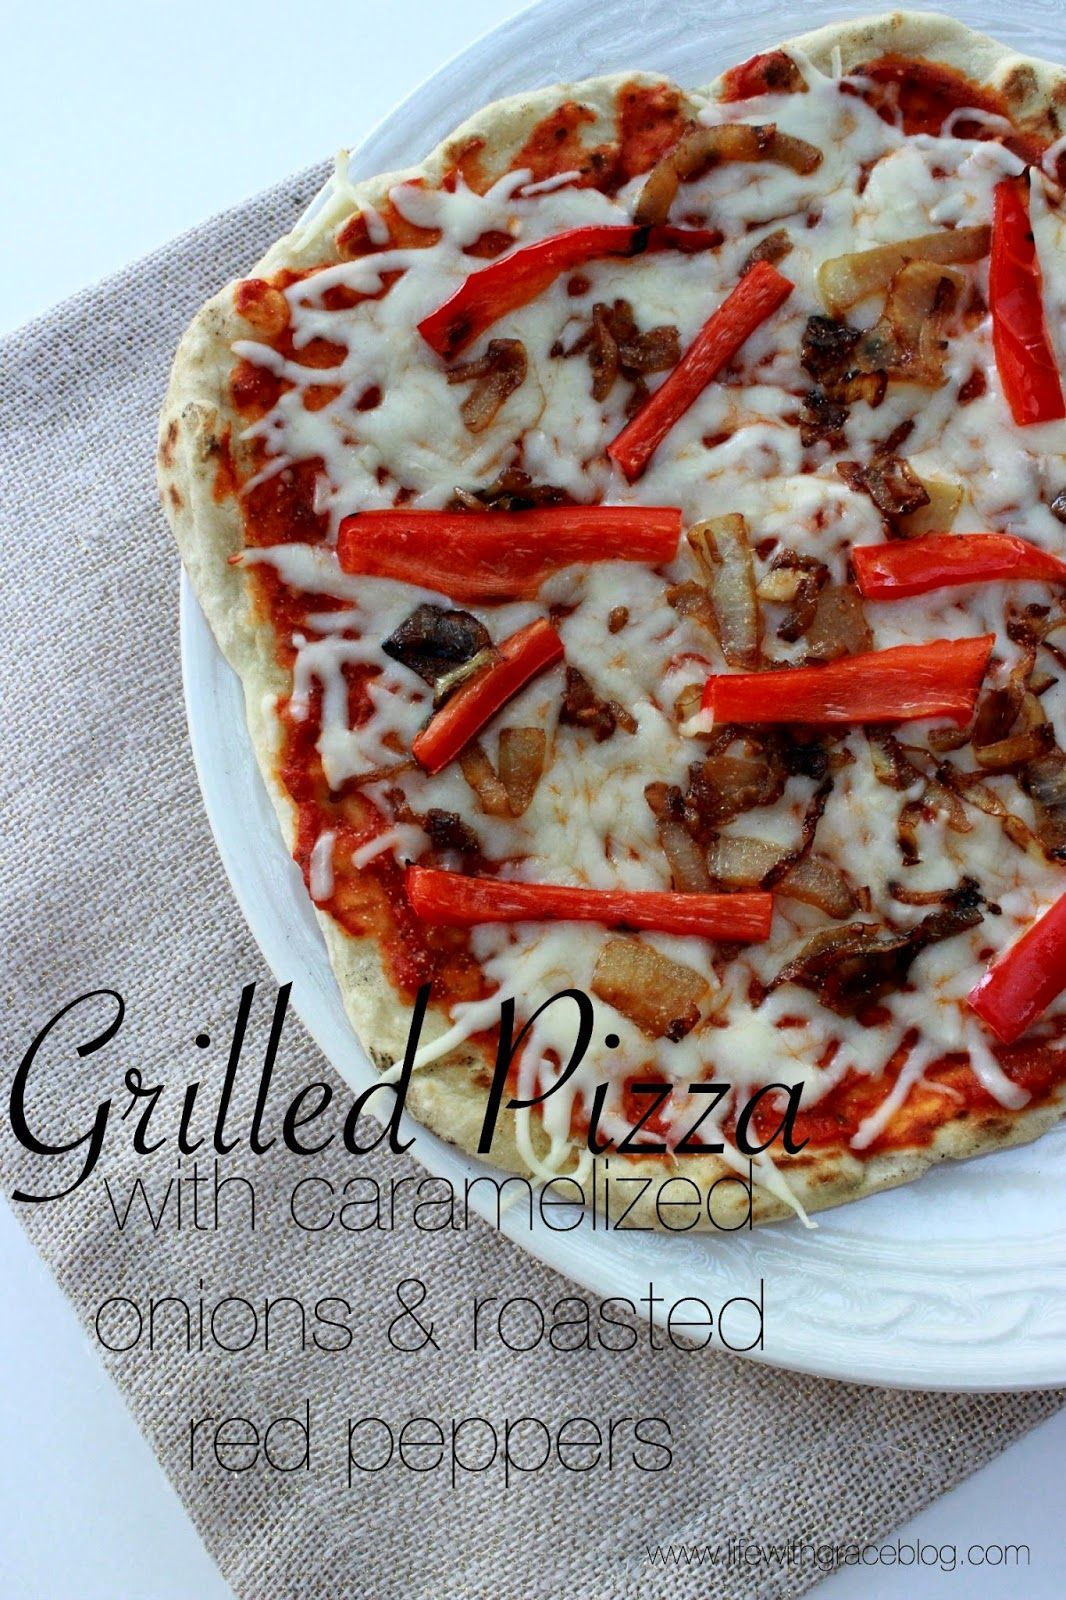 Grilled Pizza–such a yummy looking combo! I love making grilled pizza on my grill pan once it's too cold to grill outside. Thanks for the recipe @lfwithgraceblog!